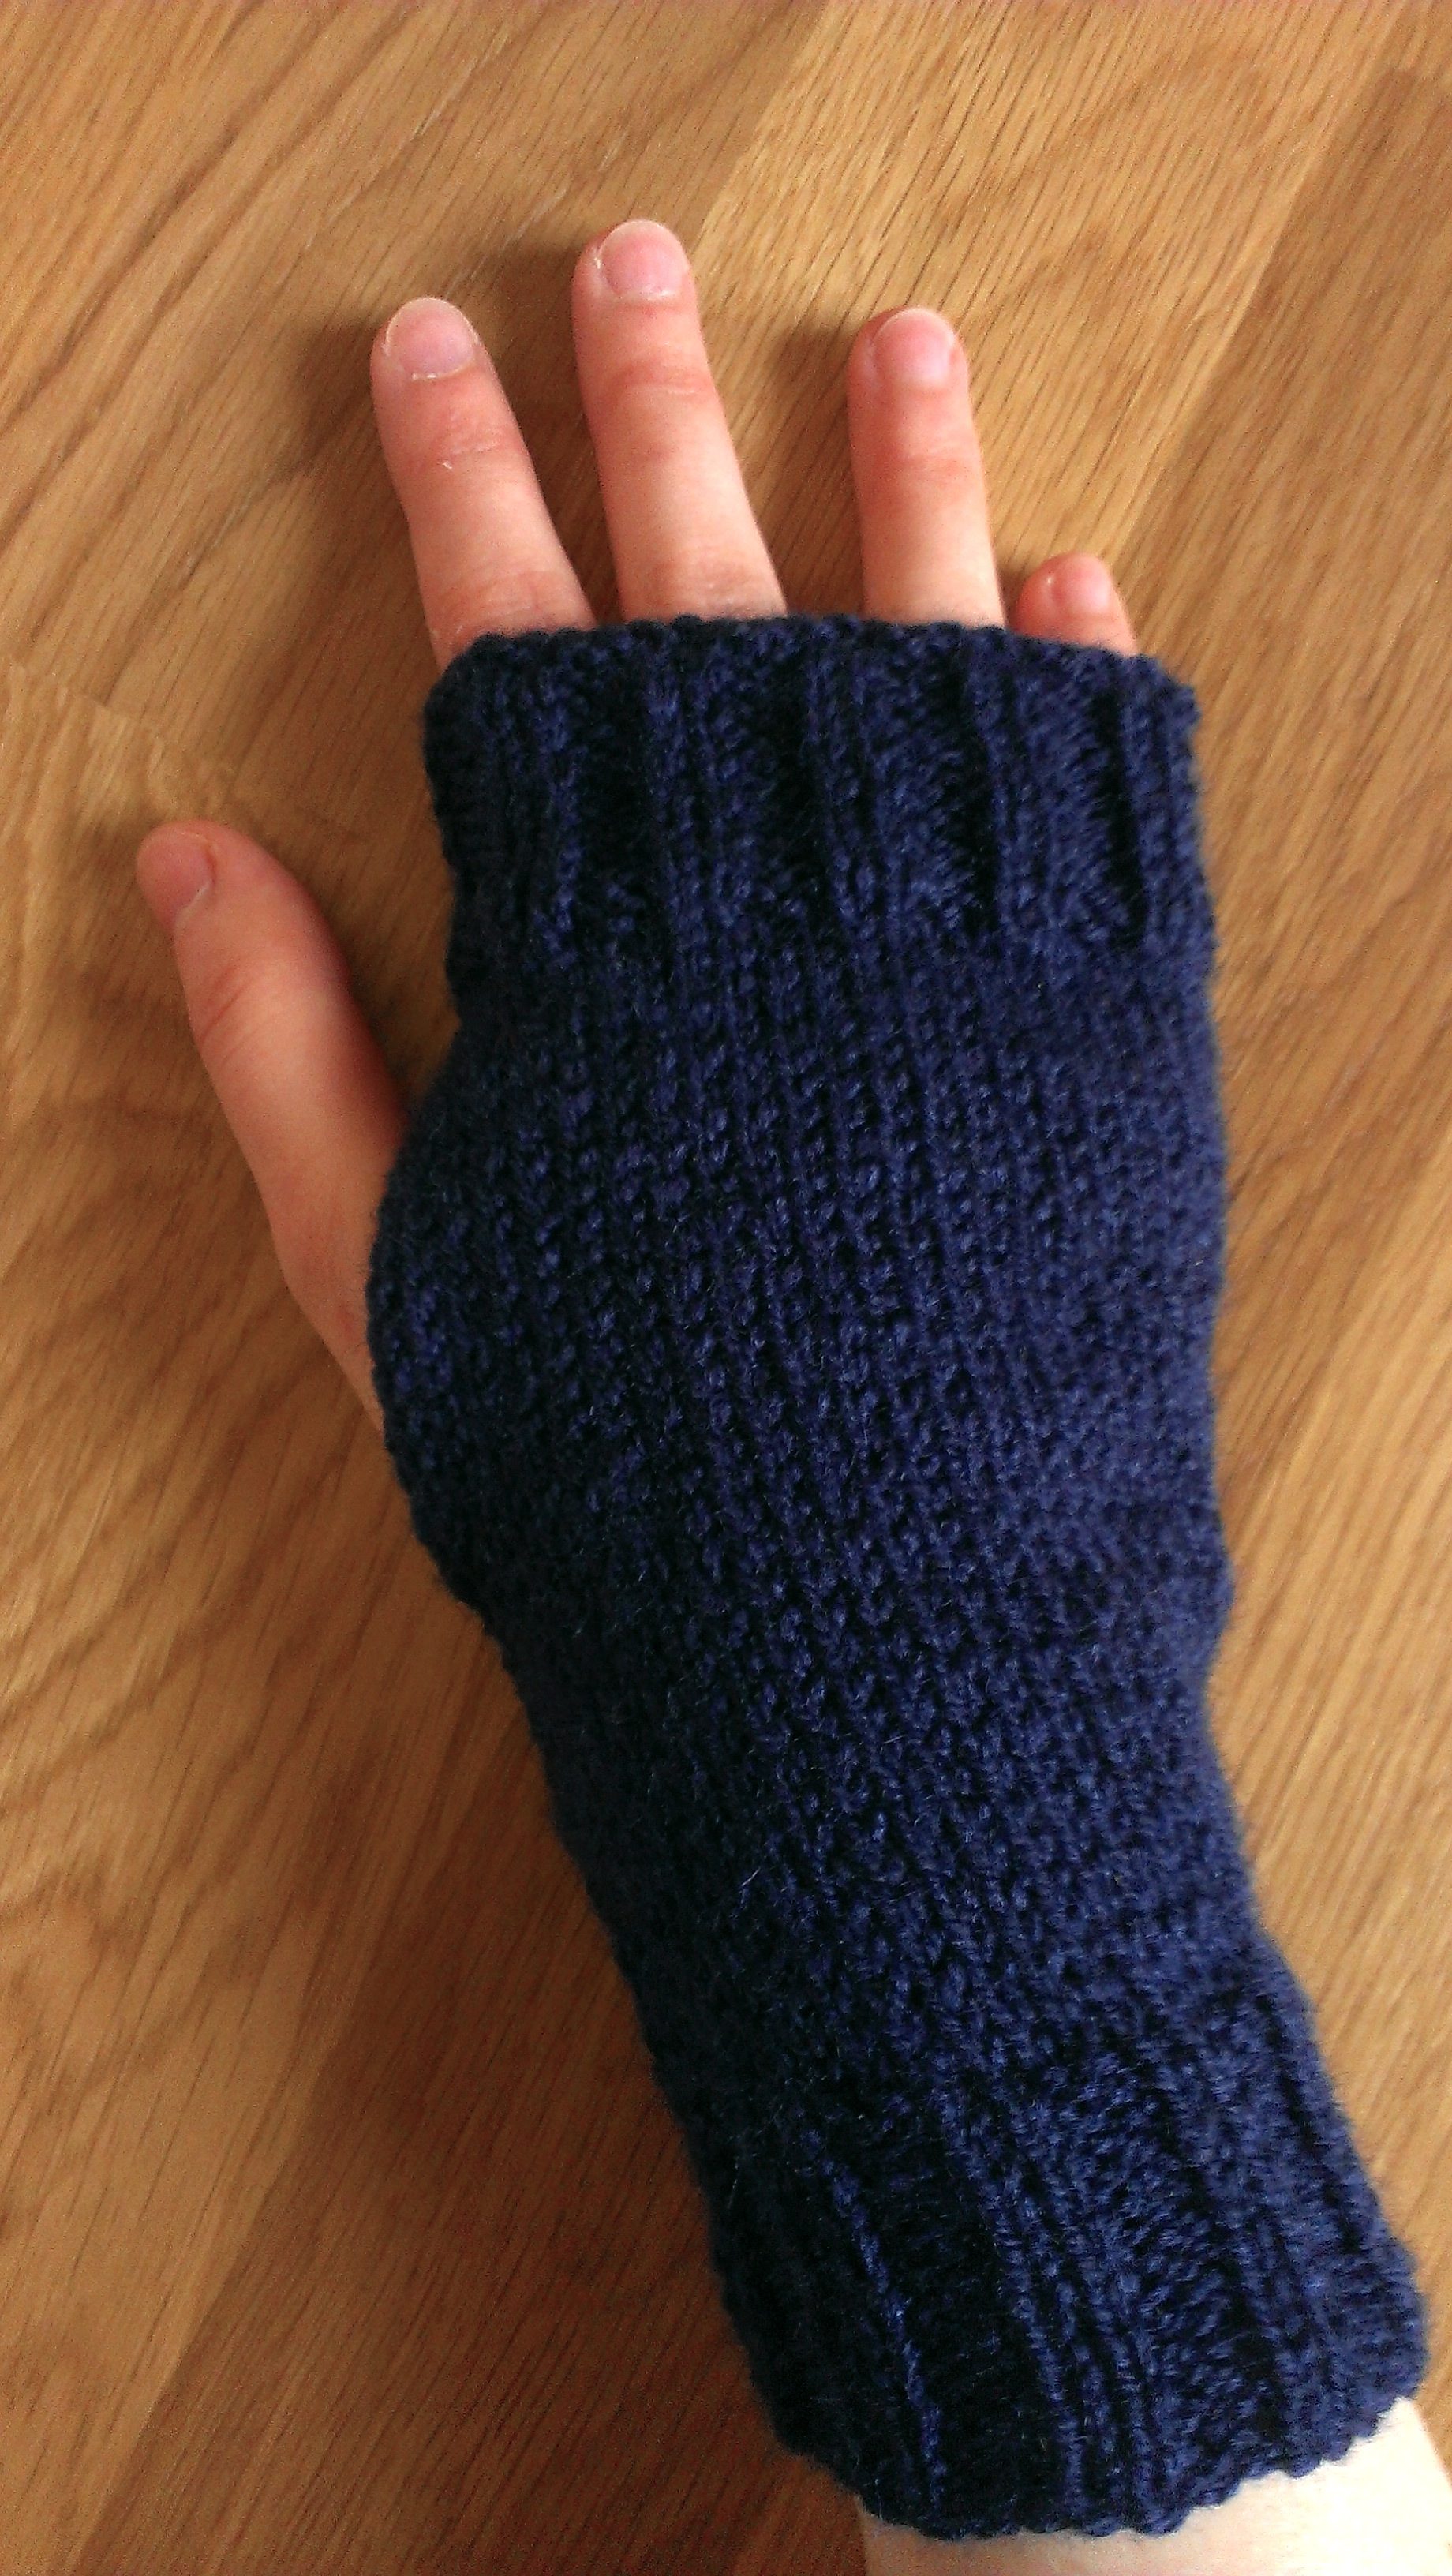 Knitted Fingerless Gloves | Sew Sensational